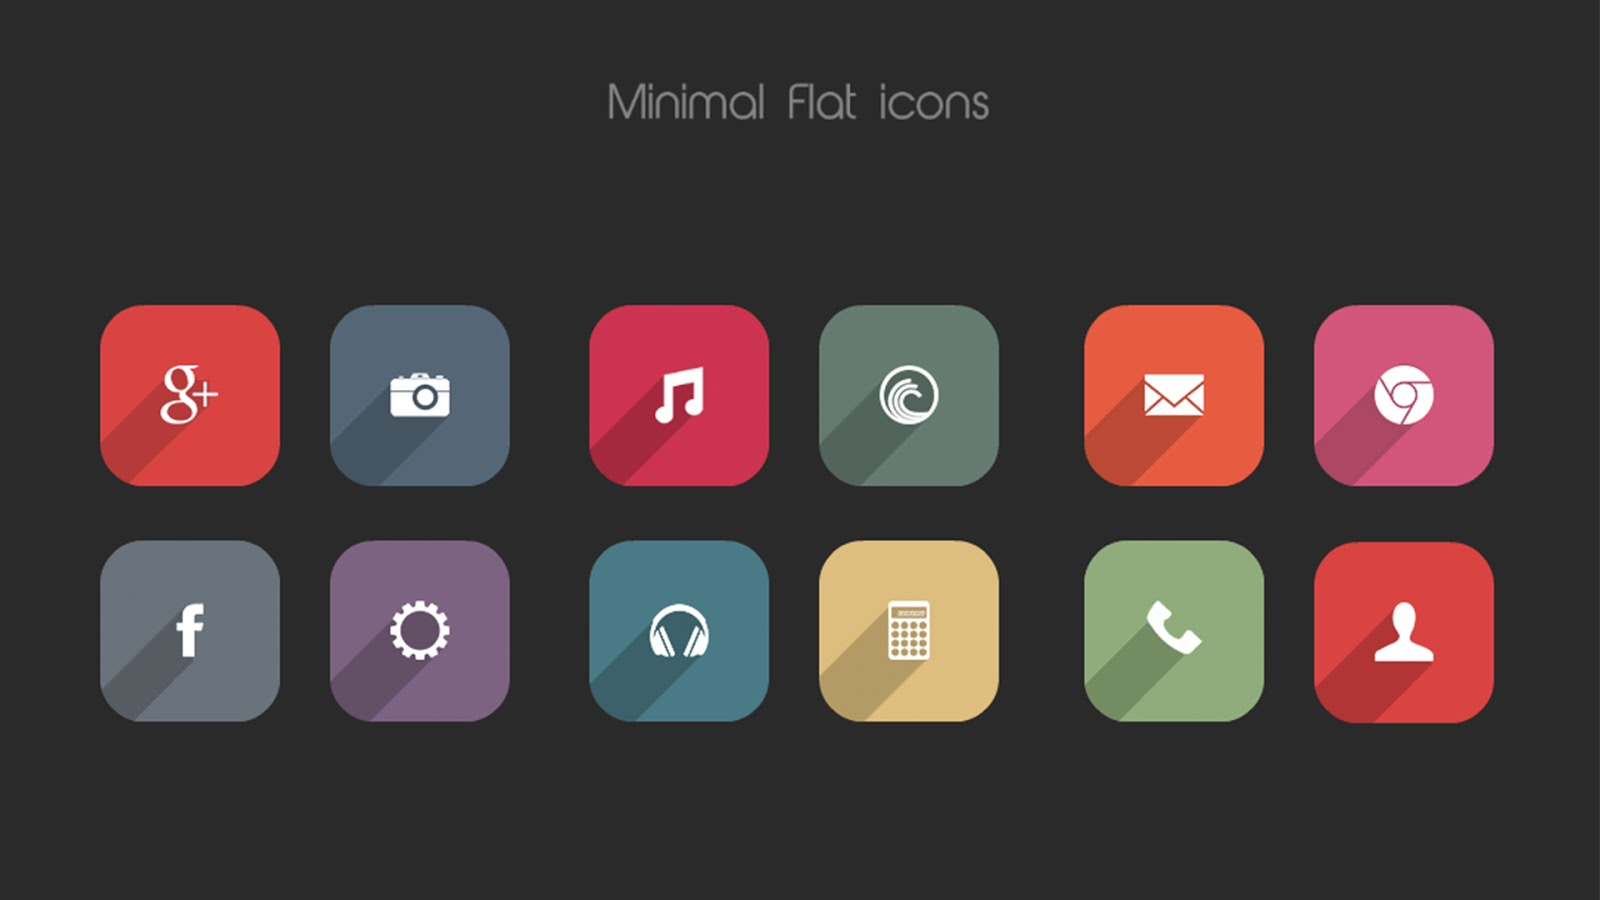 Easy Download Minimal Flat Icon Pack for Android! 550+ HD